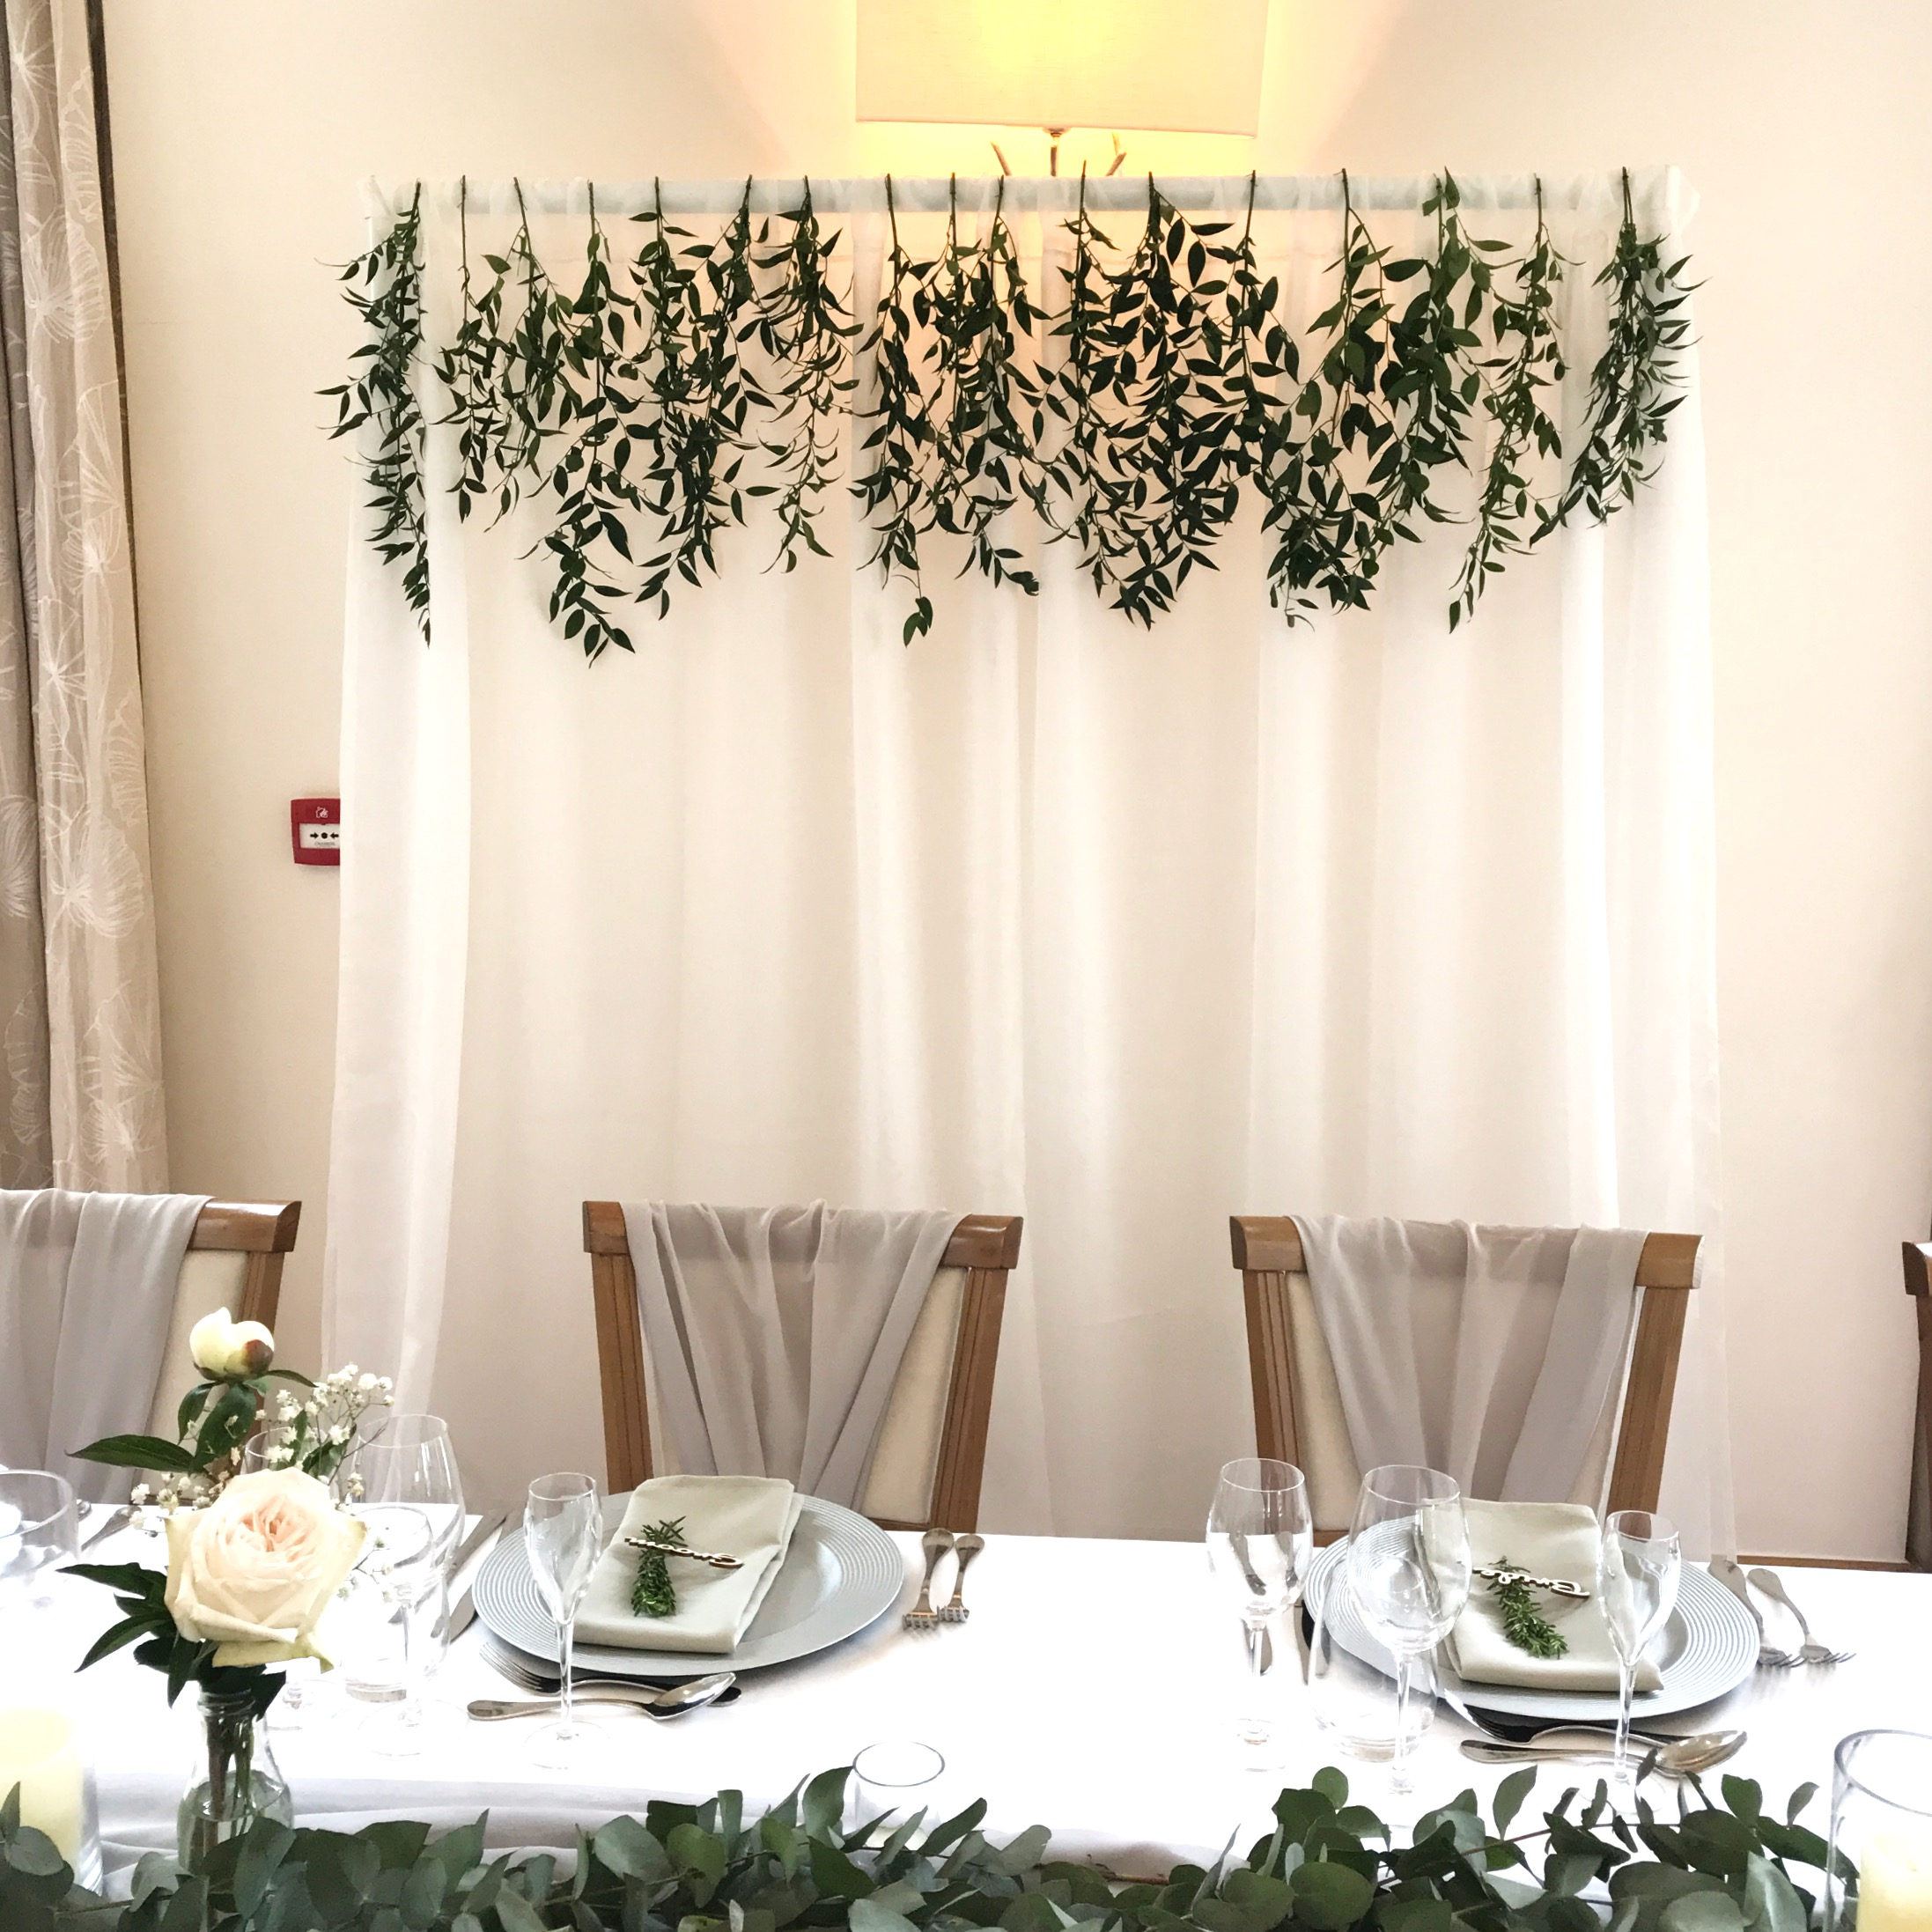 GREENERY DRAPE BACKDROP